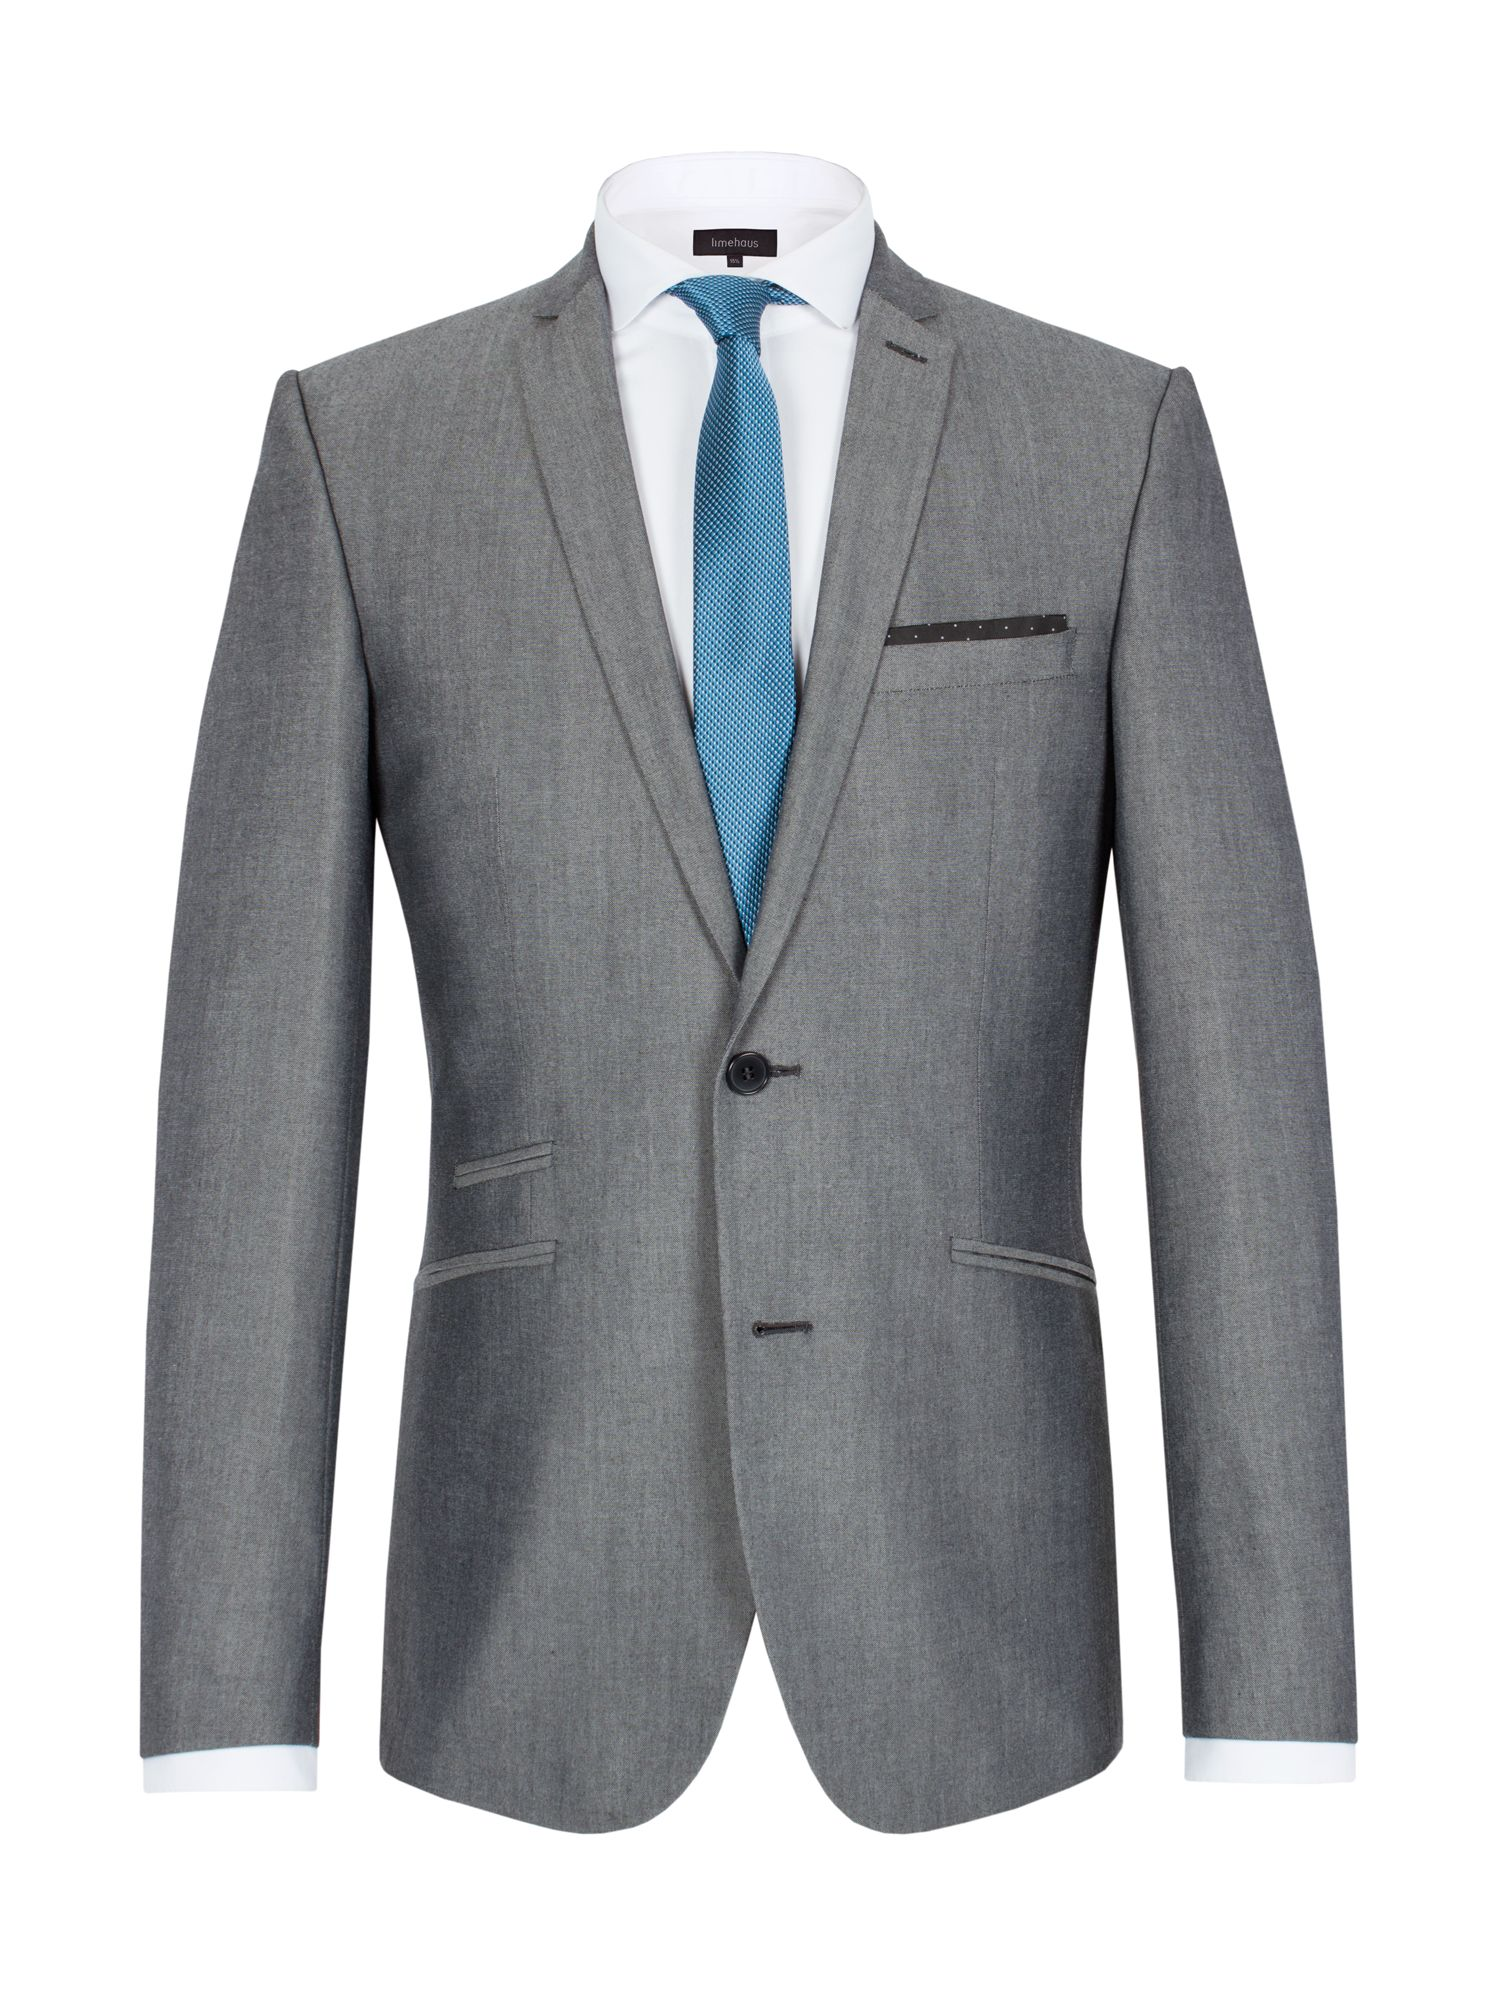 Tonic single breasted suit jacket